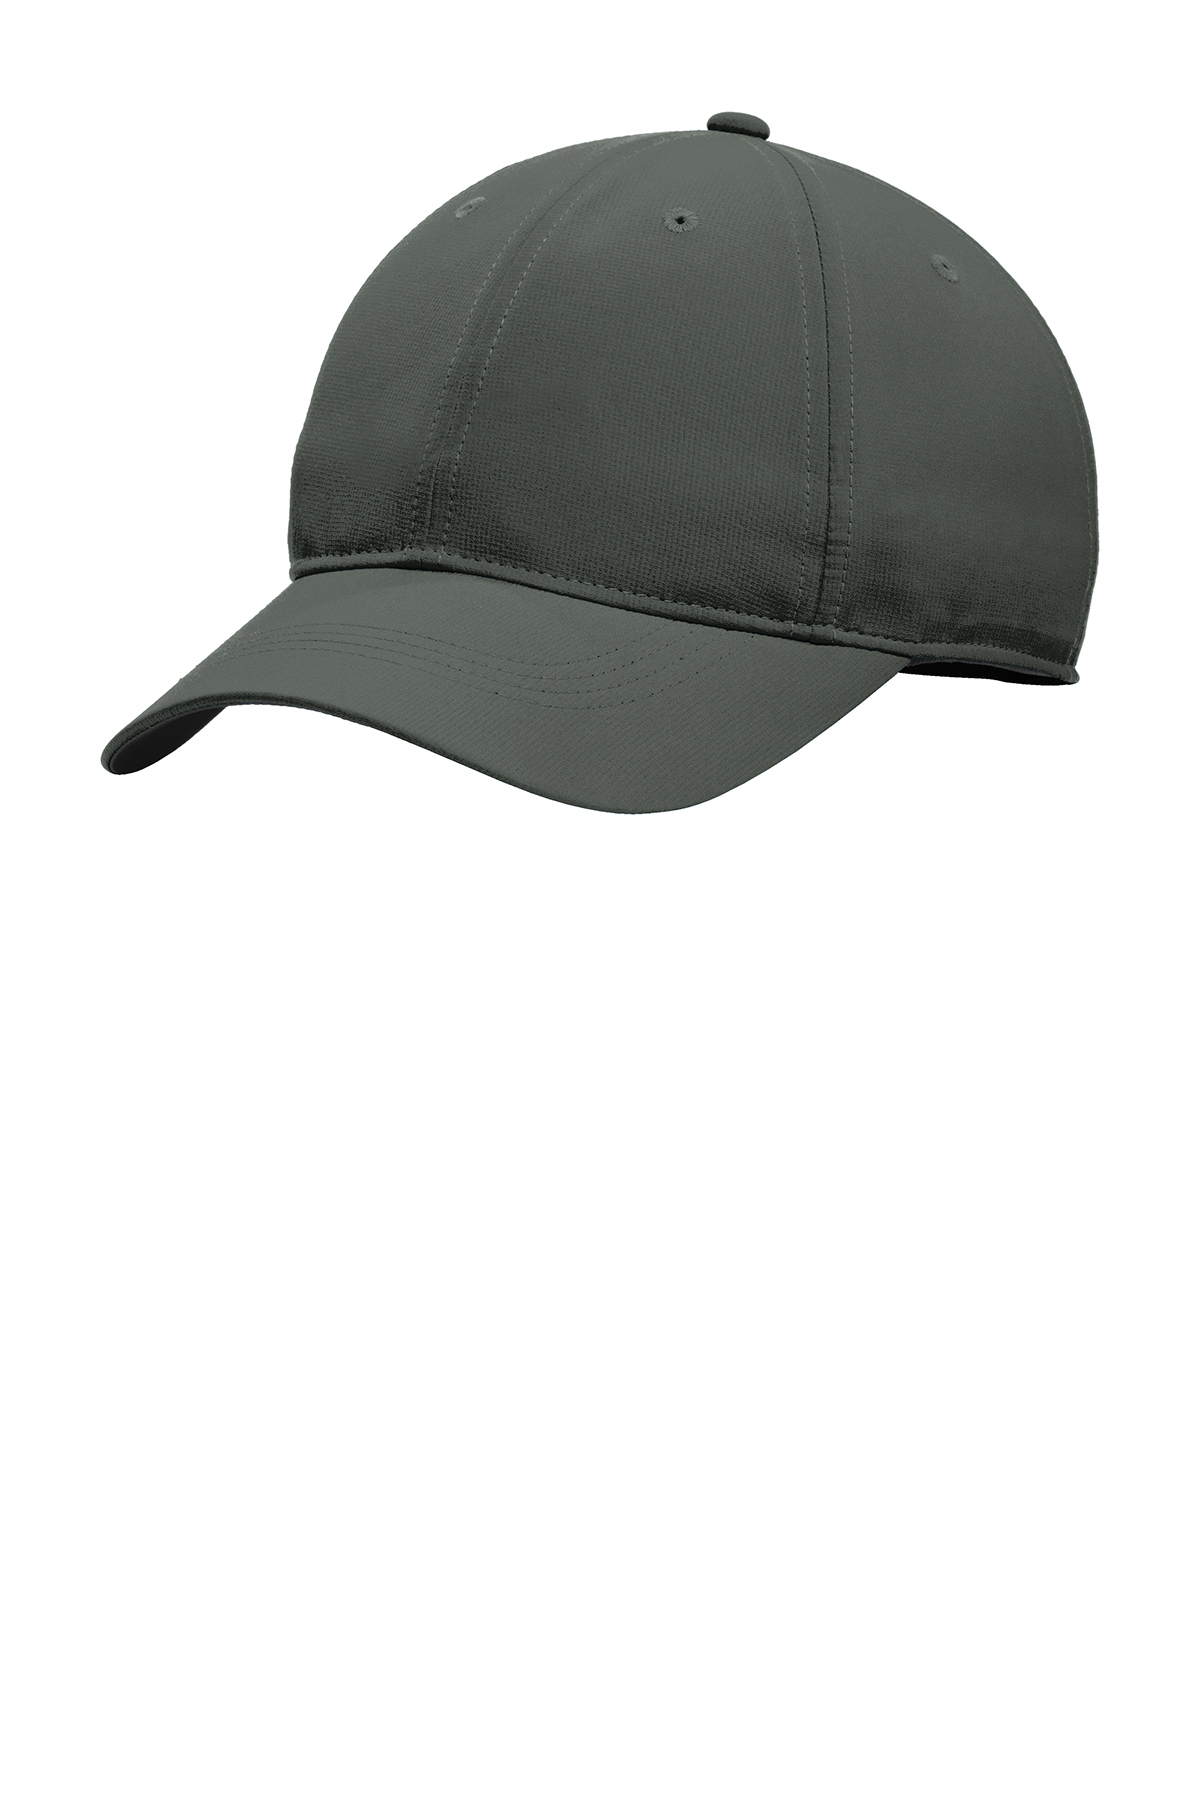 Nike Golf NKAA1859 - Nike Dri-FIT Tech Cap